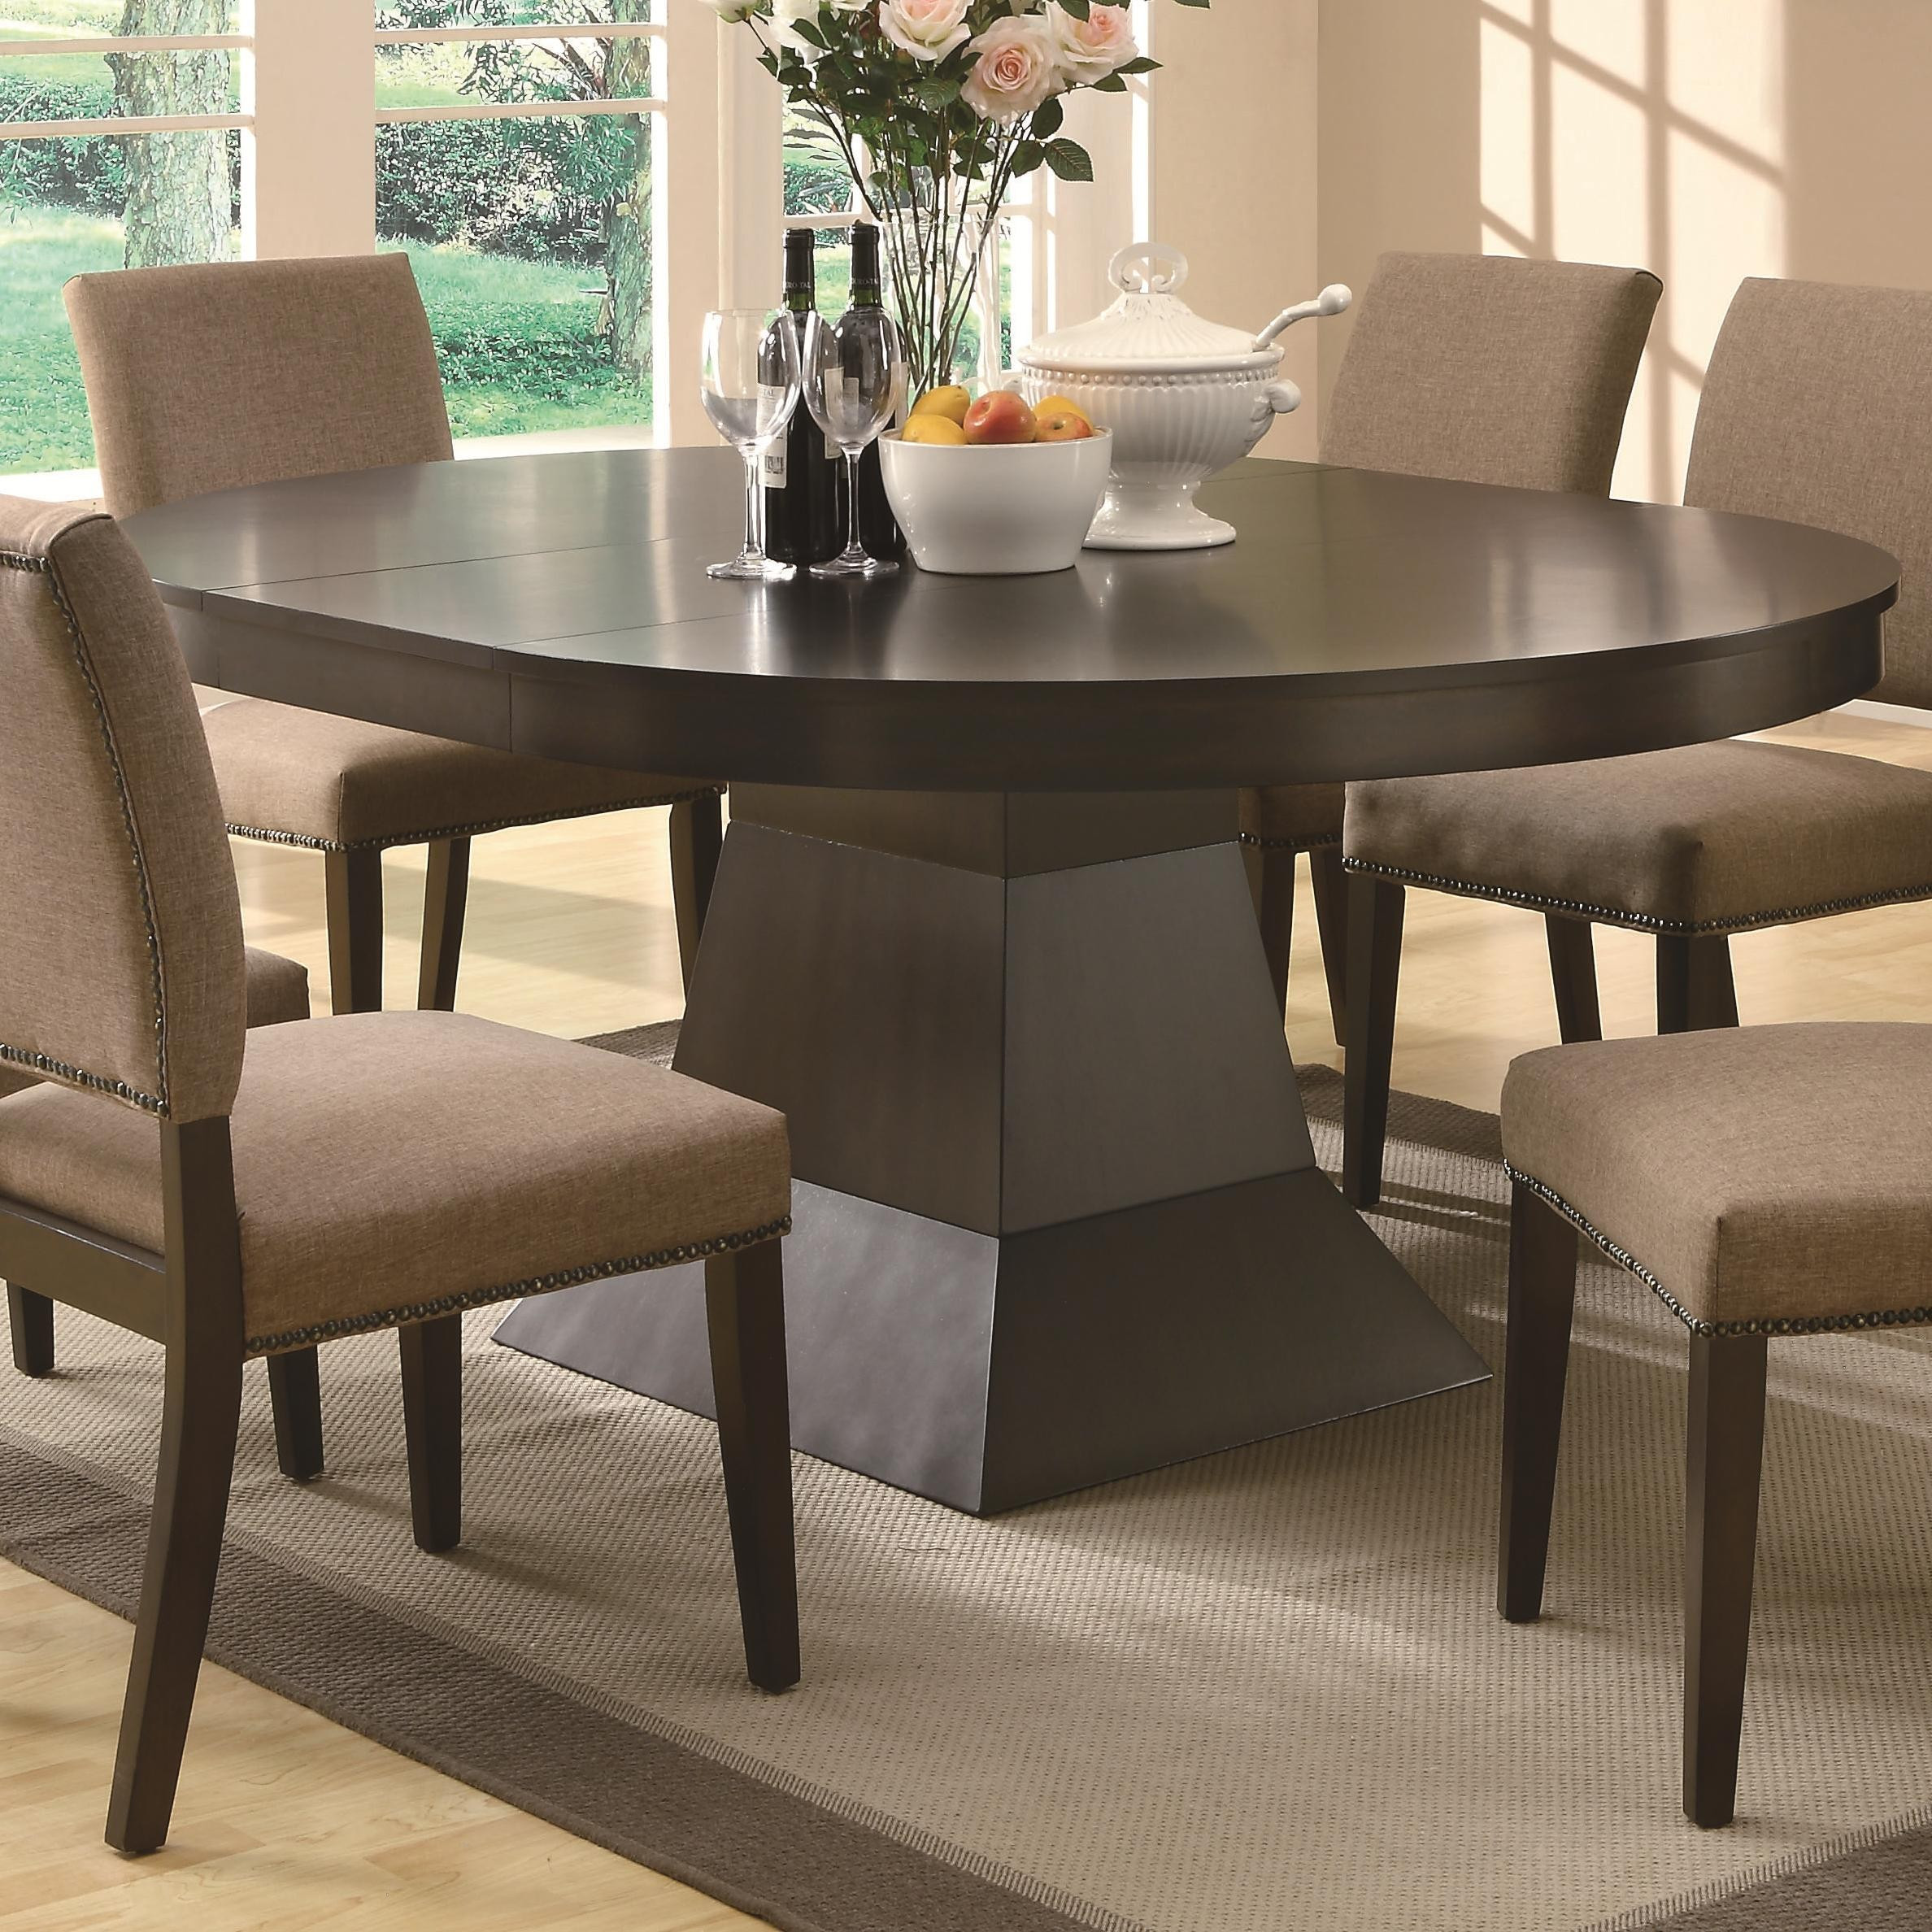 Best ideas about Oval Dining Table . Save or Pin Buy Myrtle Dining Oval Table w Extension by Coaster from Now.